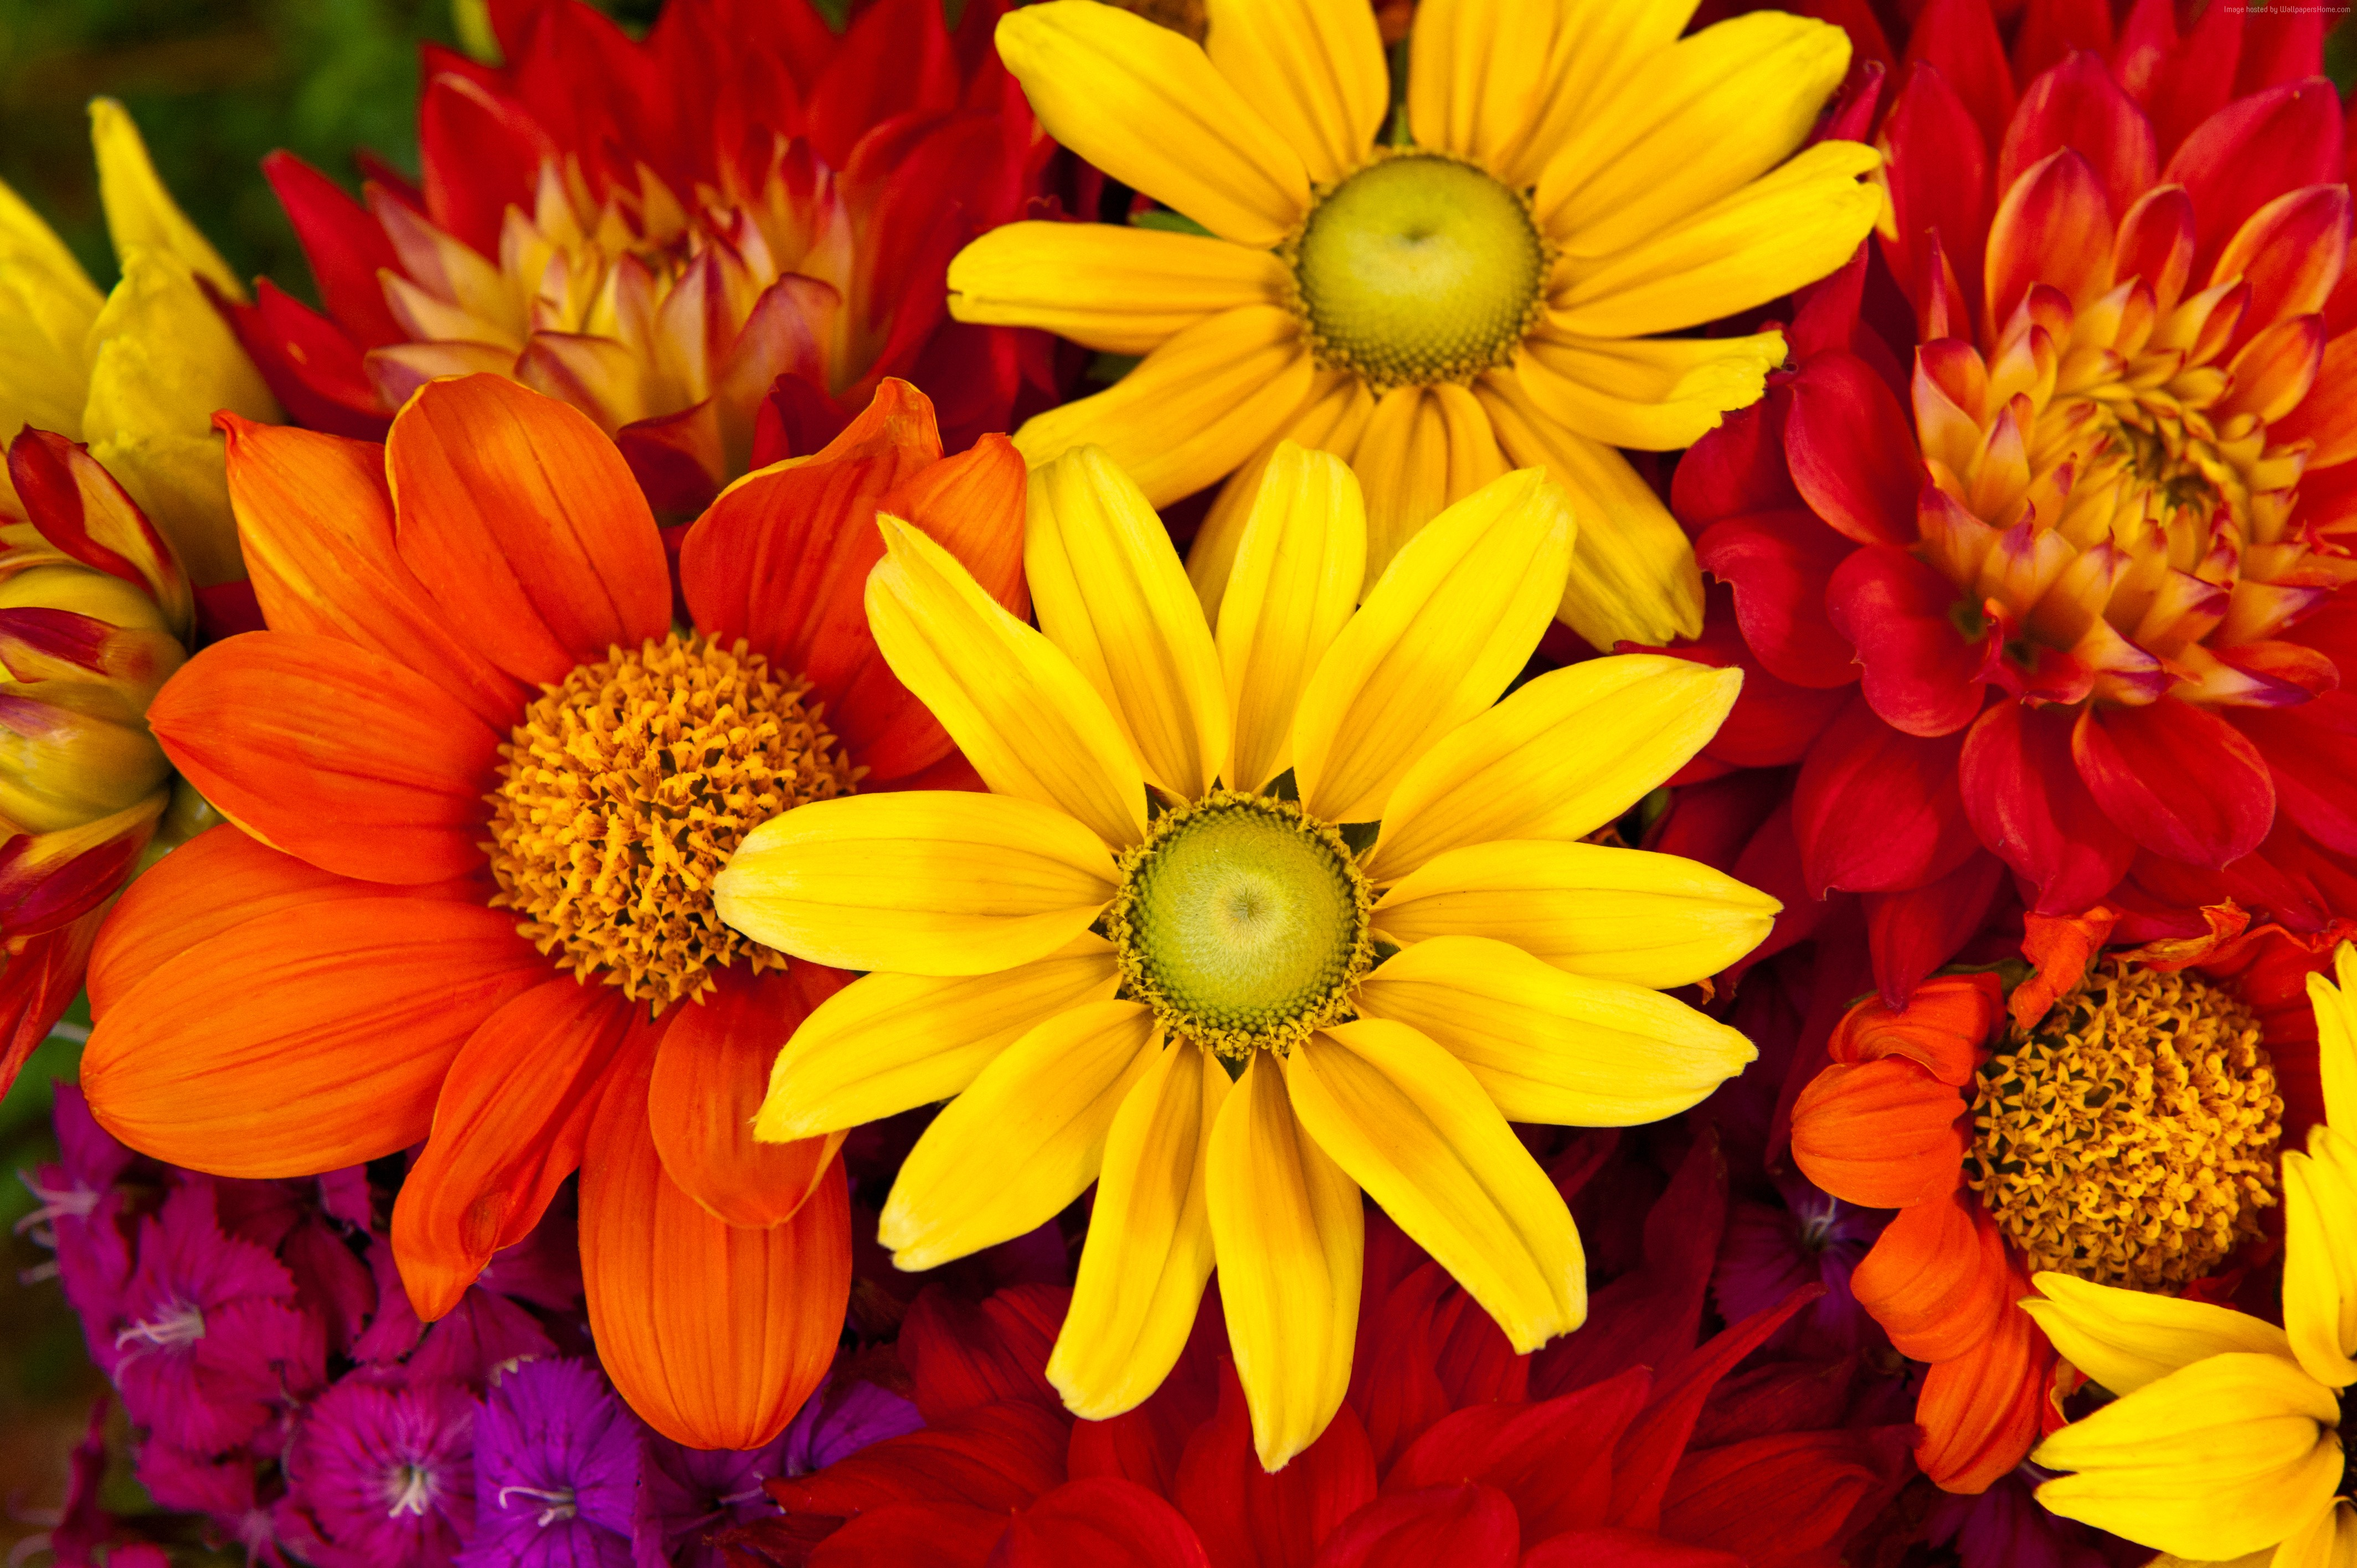 Colorful Flowers 4k Ultra Hd Wallpaper Background Image